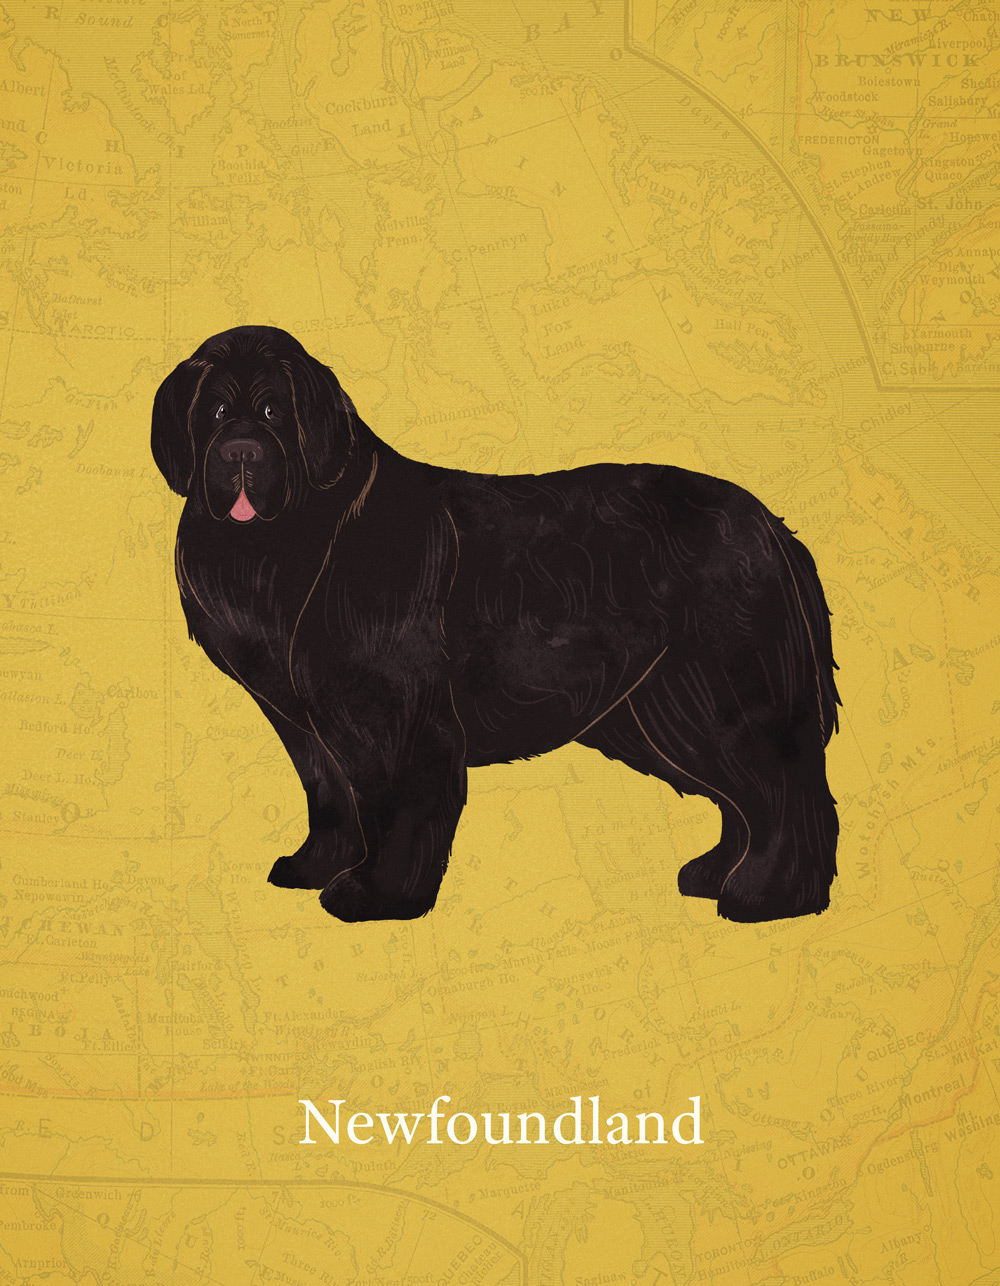 Pet Store Cockburn 5 Dog Breeds From Canada On Behance